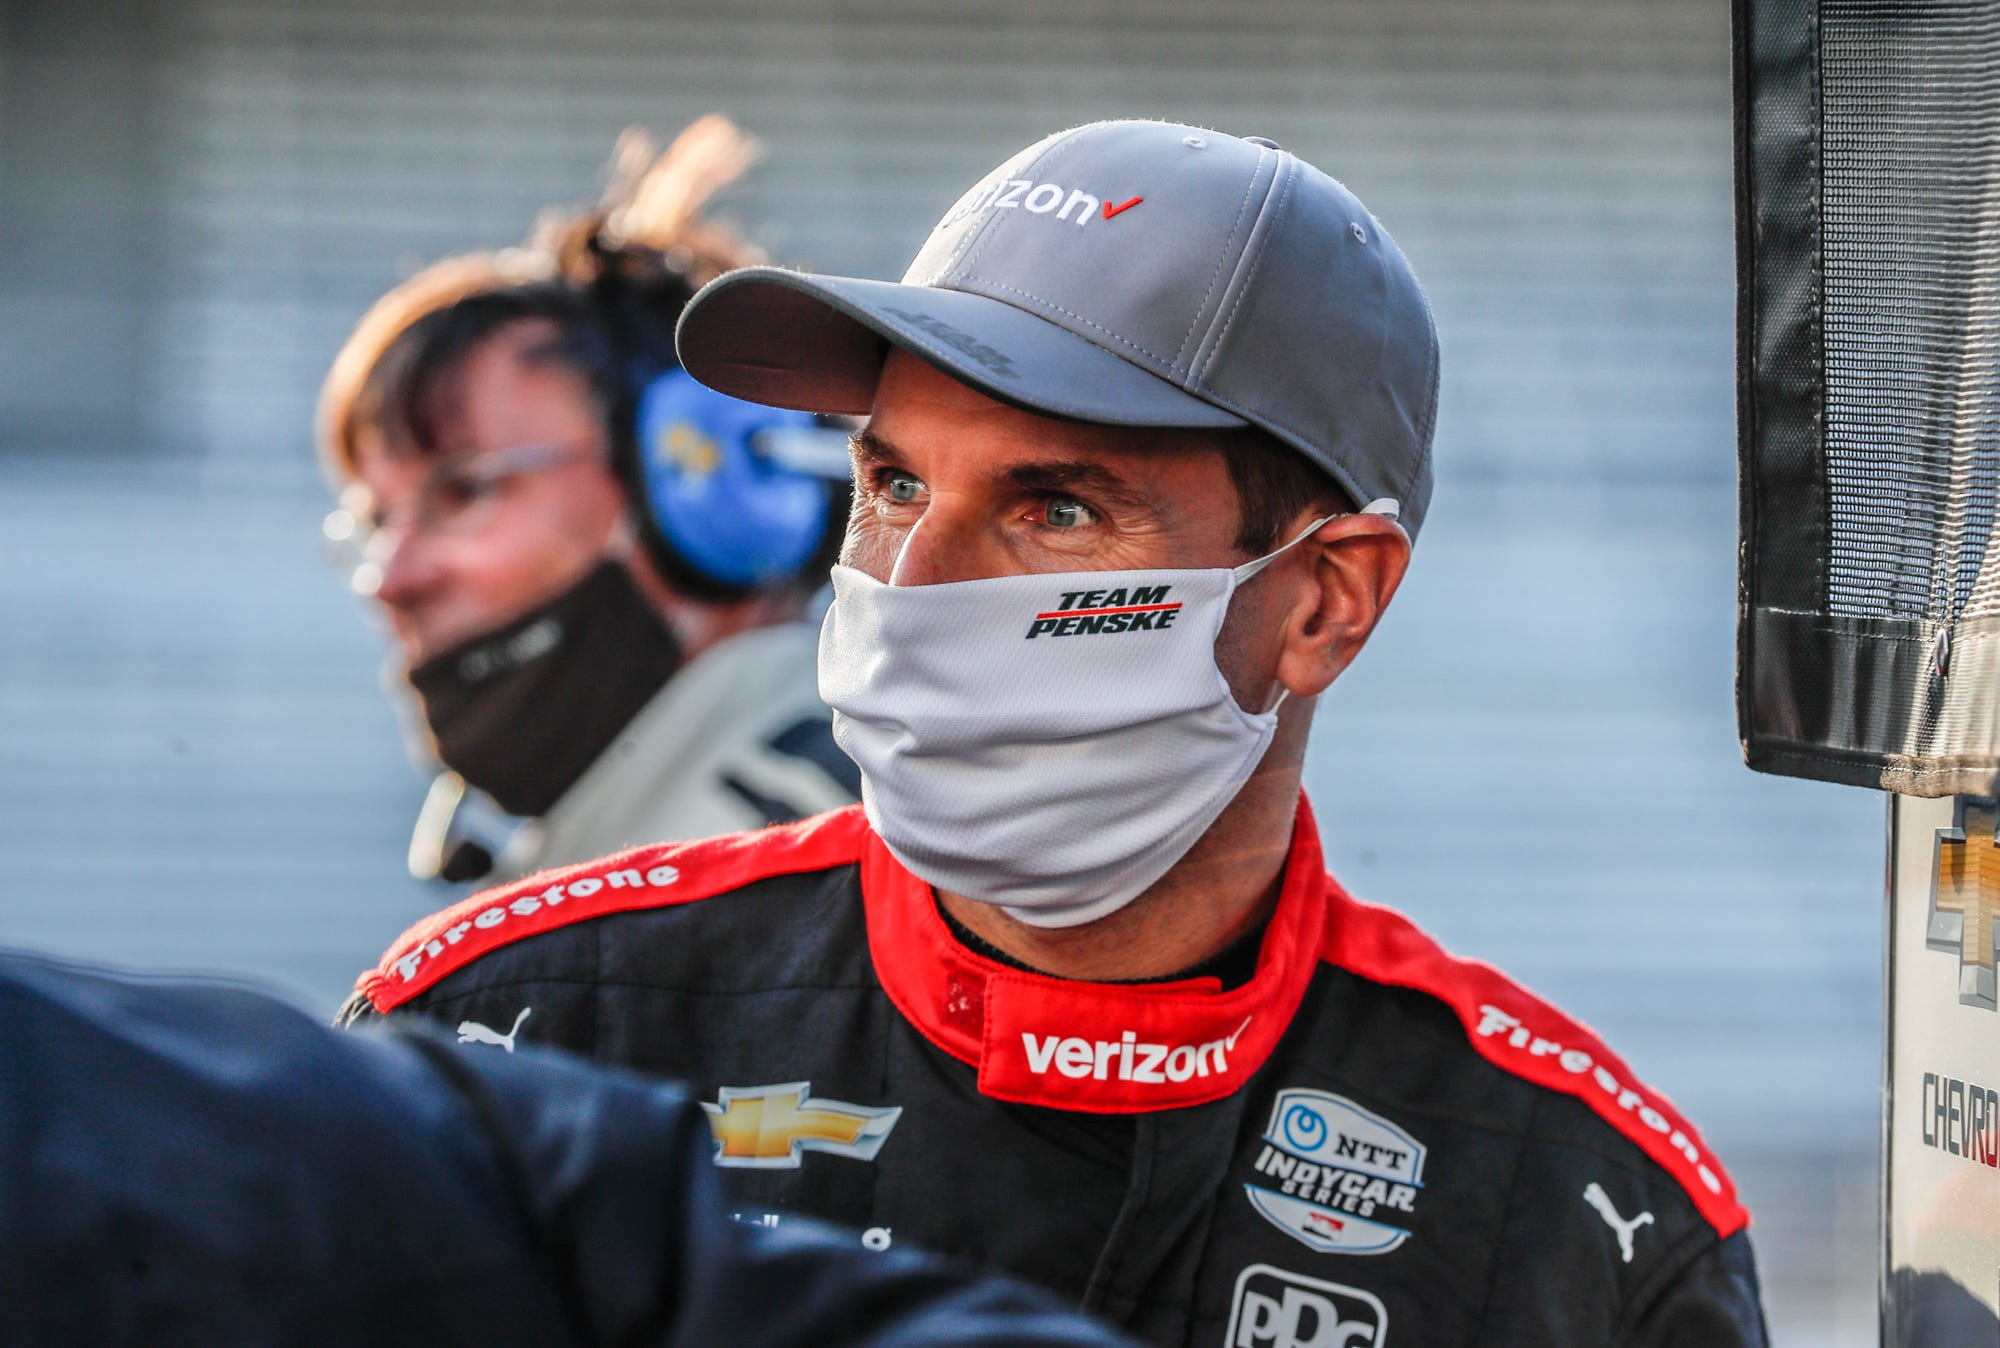 IndyCar drivers plan for clash of title bout, personal goals in St. Pete season finale